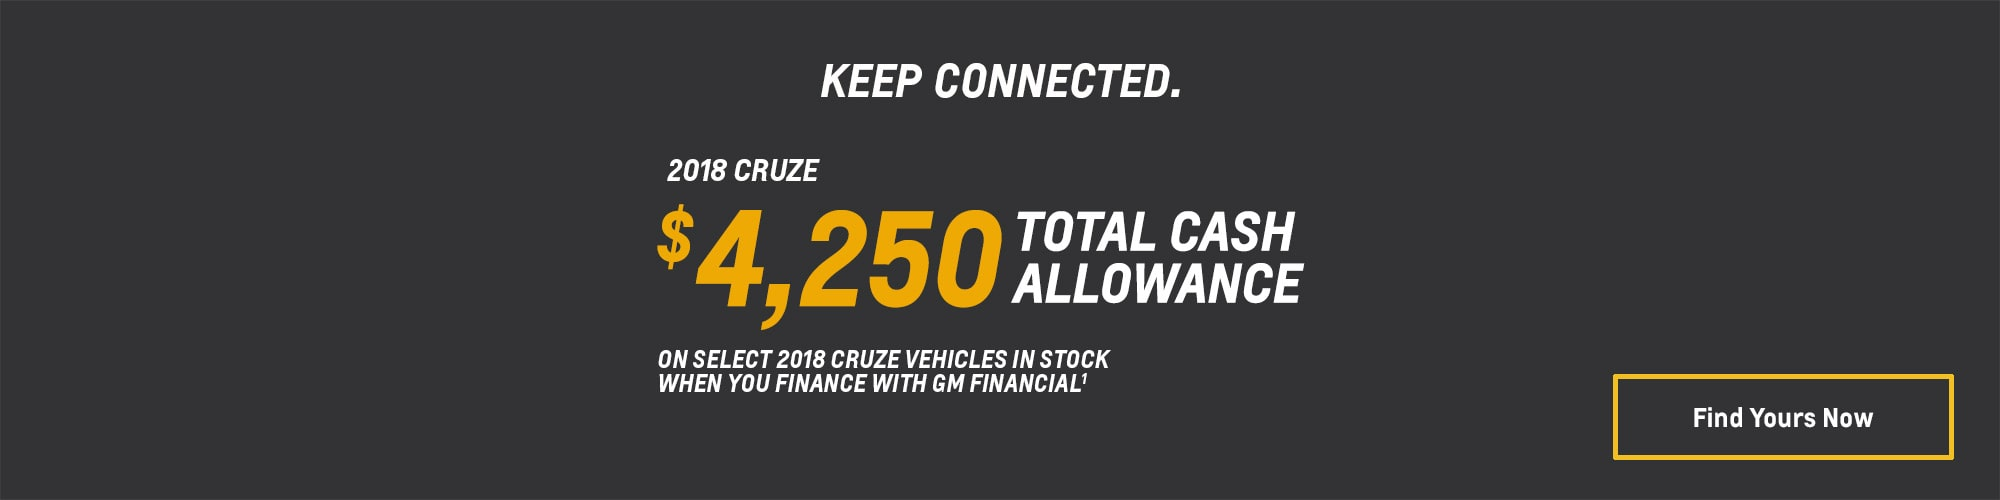 2018 Cruze Compact Car Deals and Offers